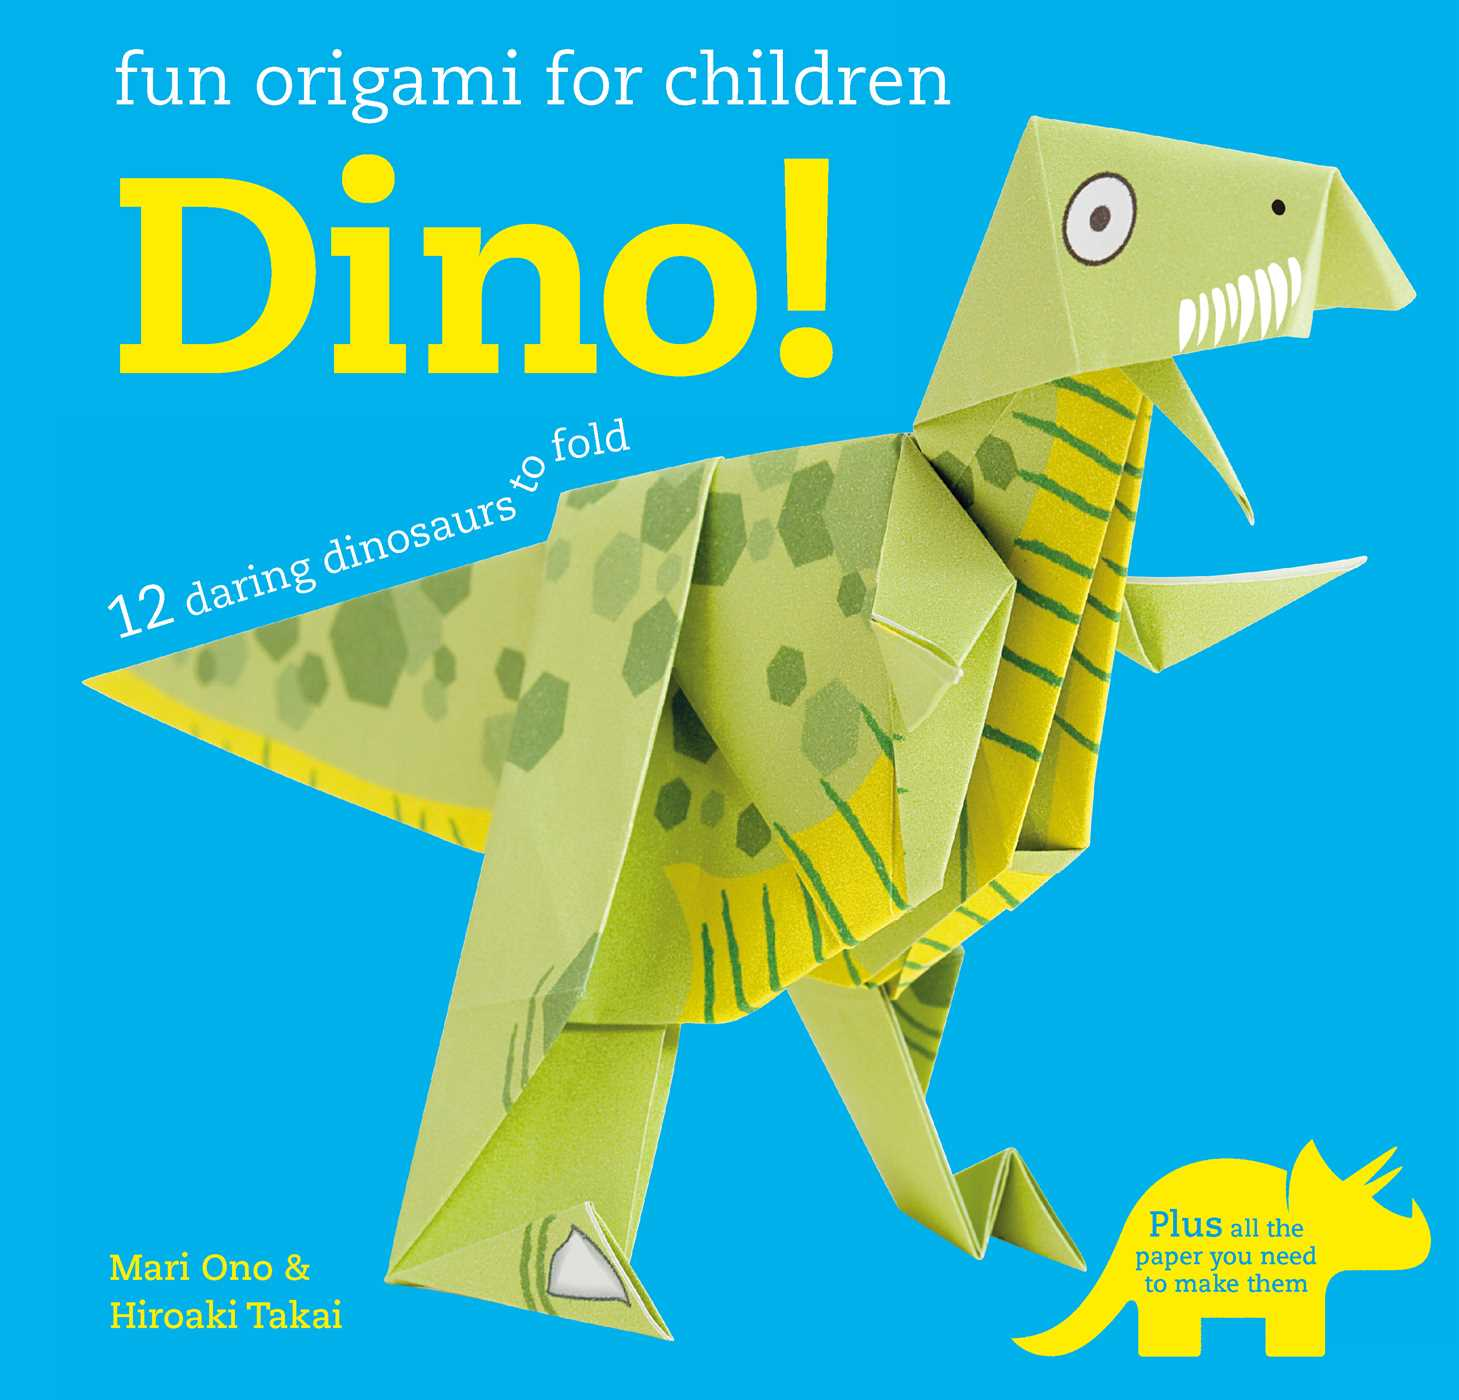 Fun Origami for Children: Dino! | Book by Mari Ono ... - photo#36